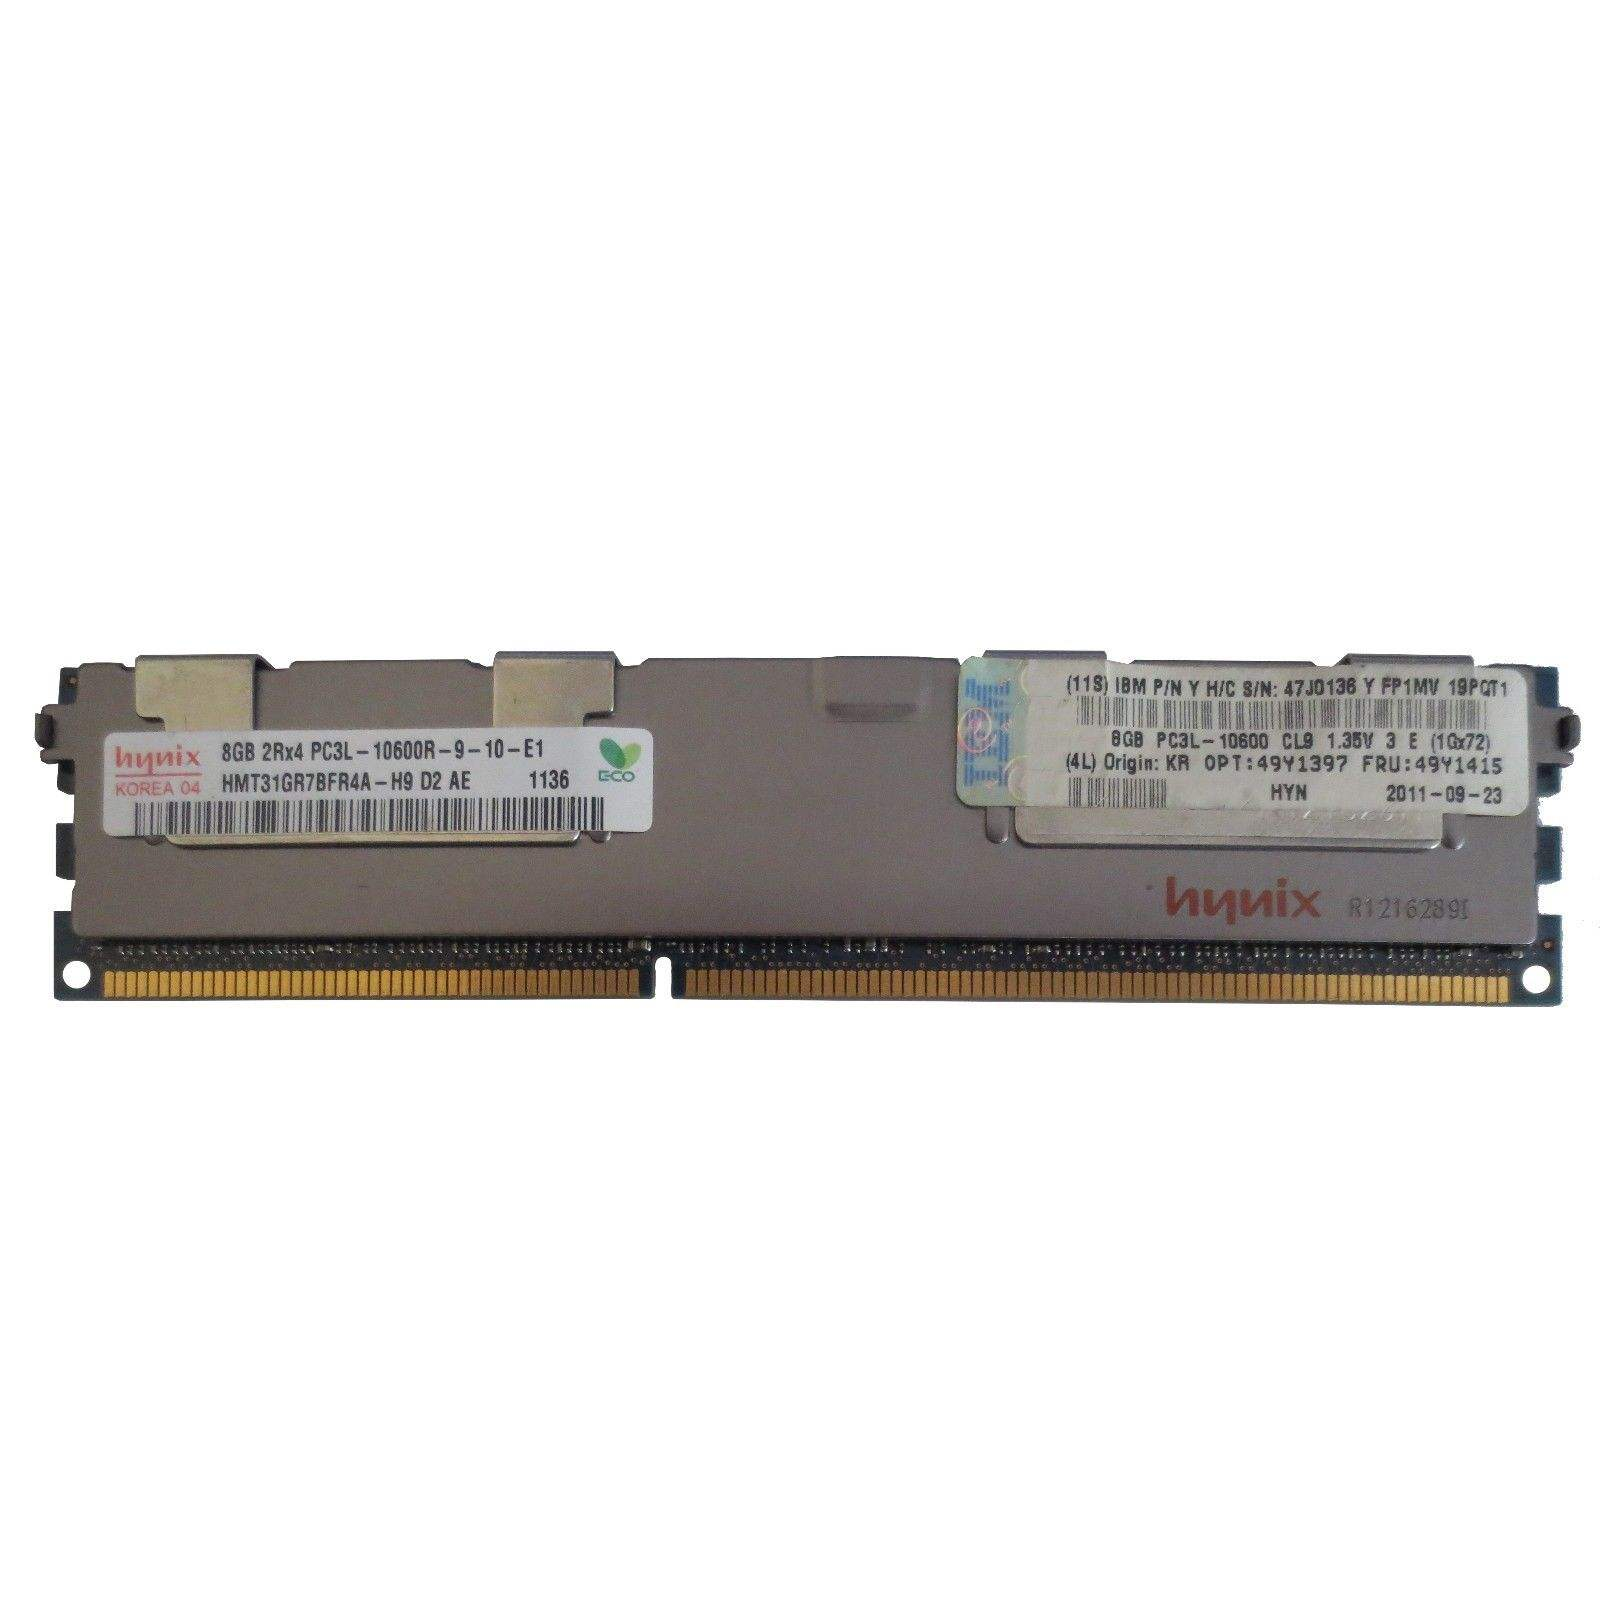 For Hynix 32GB 16GB 8GB 4GB Kit DDR3 1333MHz PC3-10600R Reg-DIMM ECC Server Memory RAM